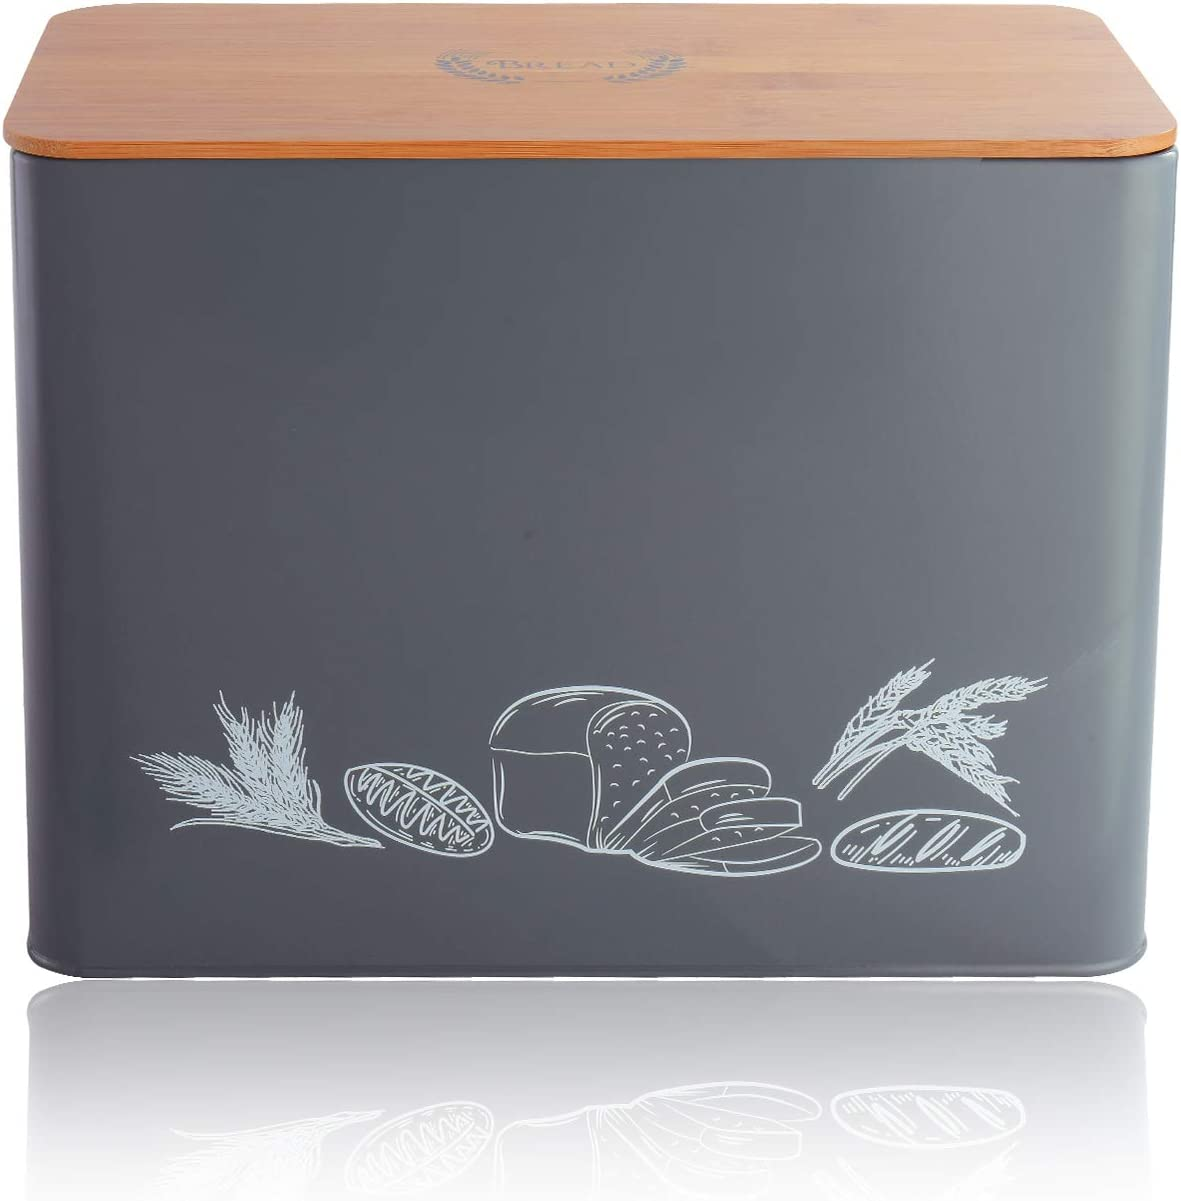 Large Bread Storage Organizer Bread Container Space Saving Bread Holder for Kitchen Counter Bread Box with Handles /& Bamboo Tongs Modern Metal Bread Bin Bamboo Cutting Board Lid 40 x18 x12cm